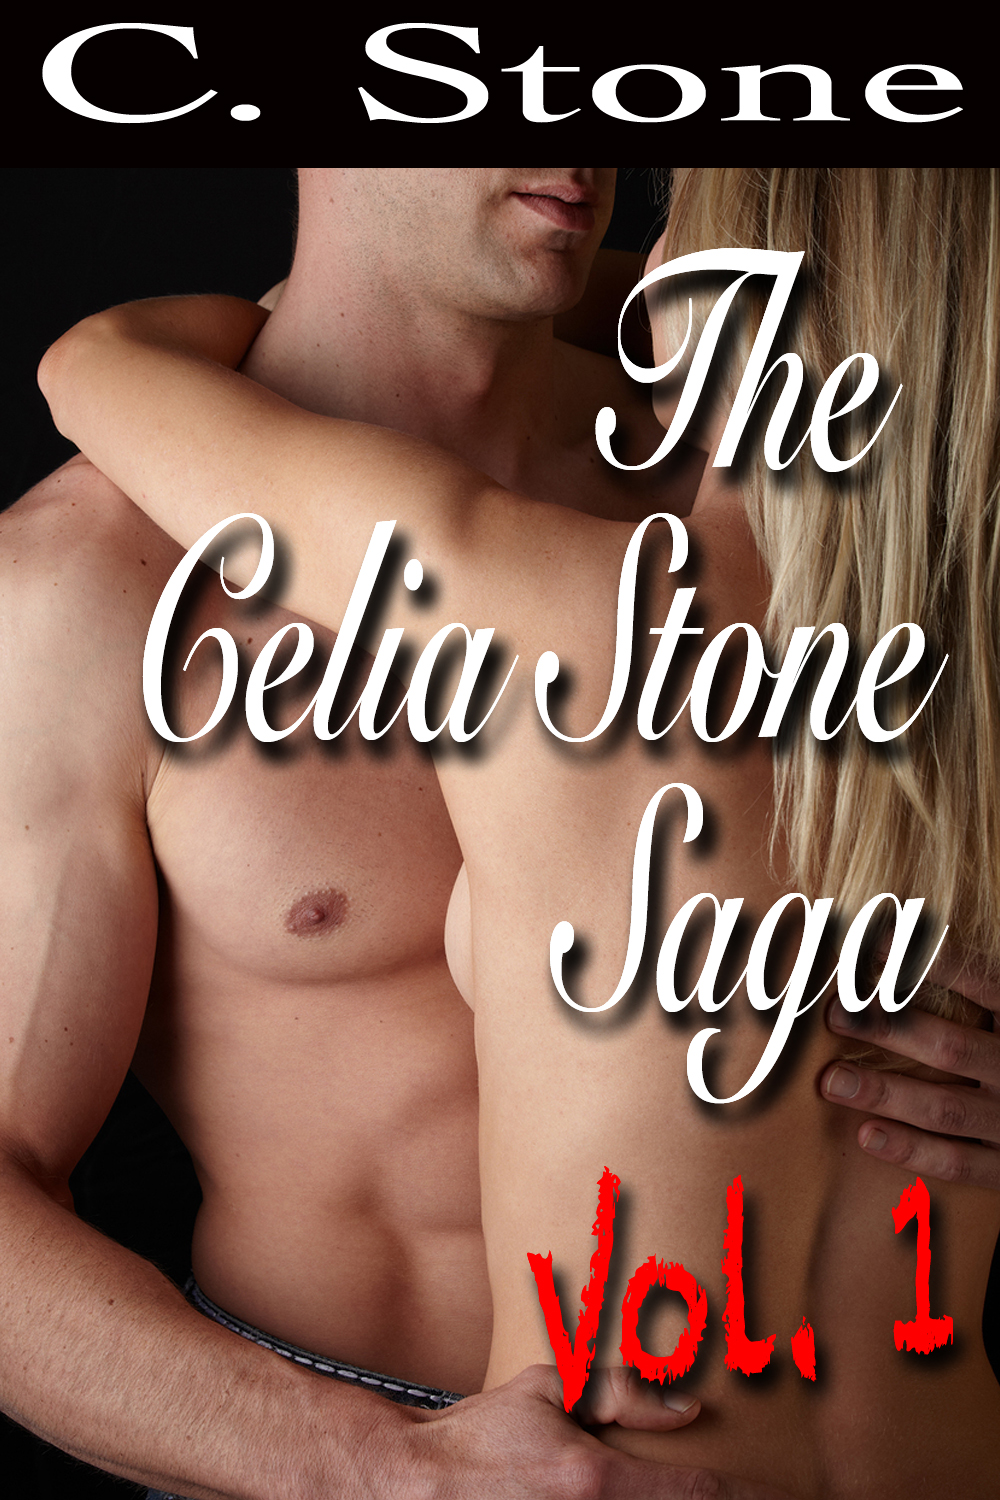 The Celia Stone Saga Vol. 1